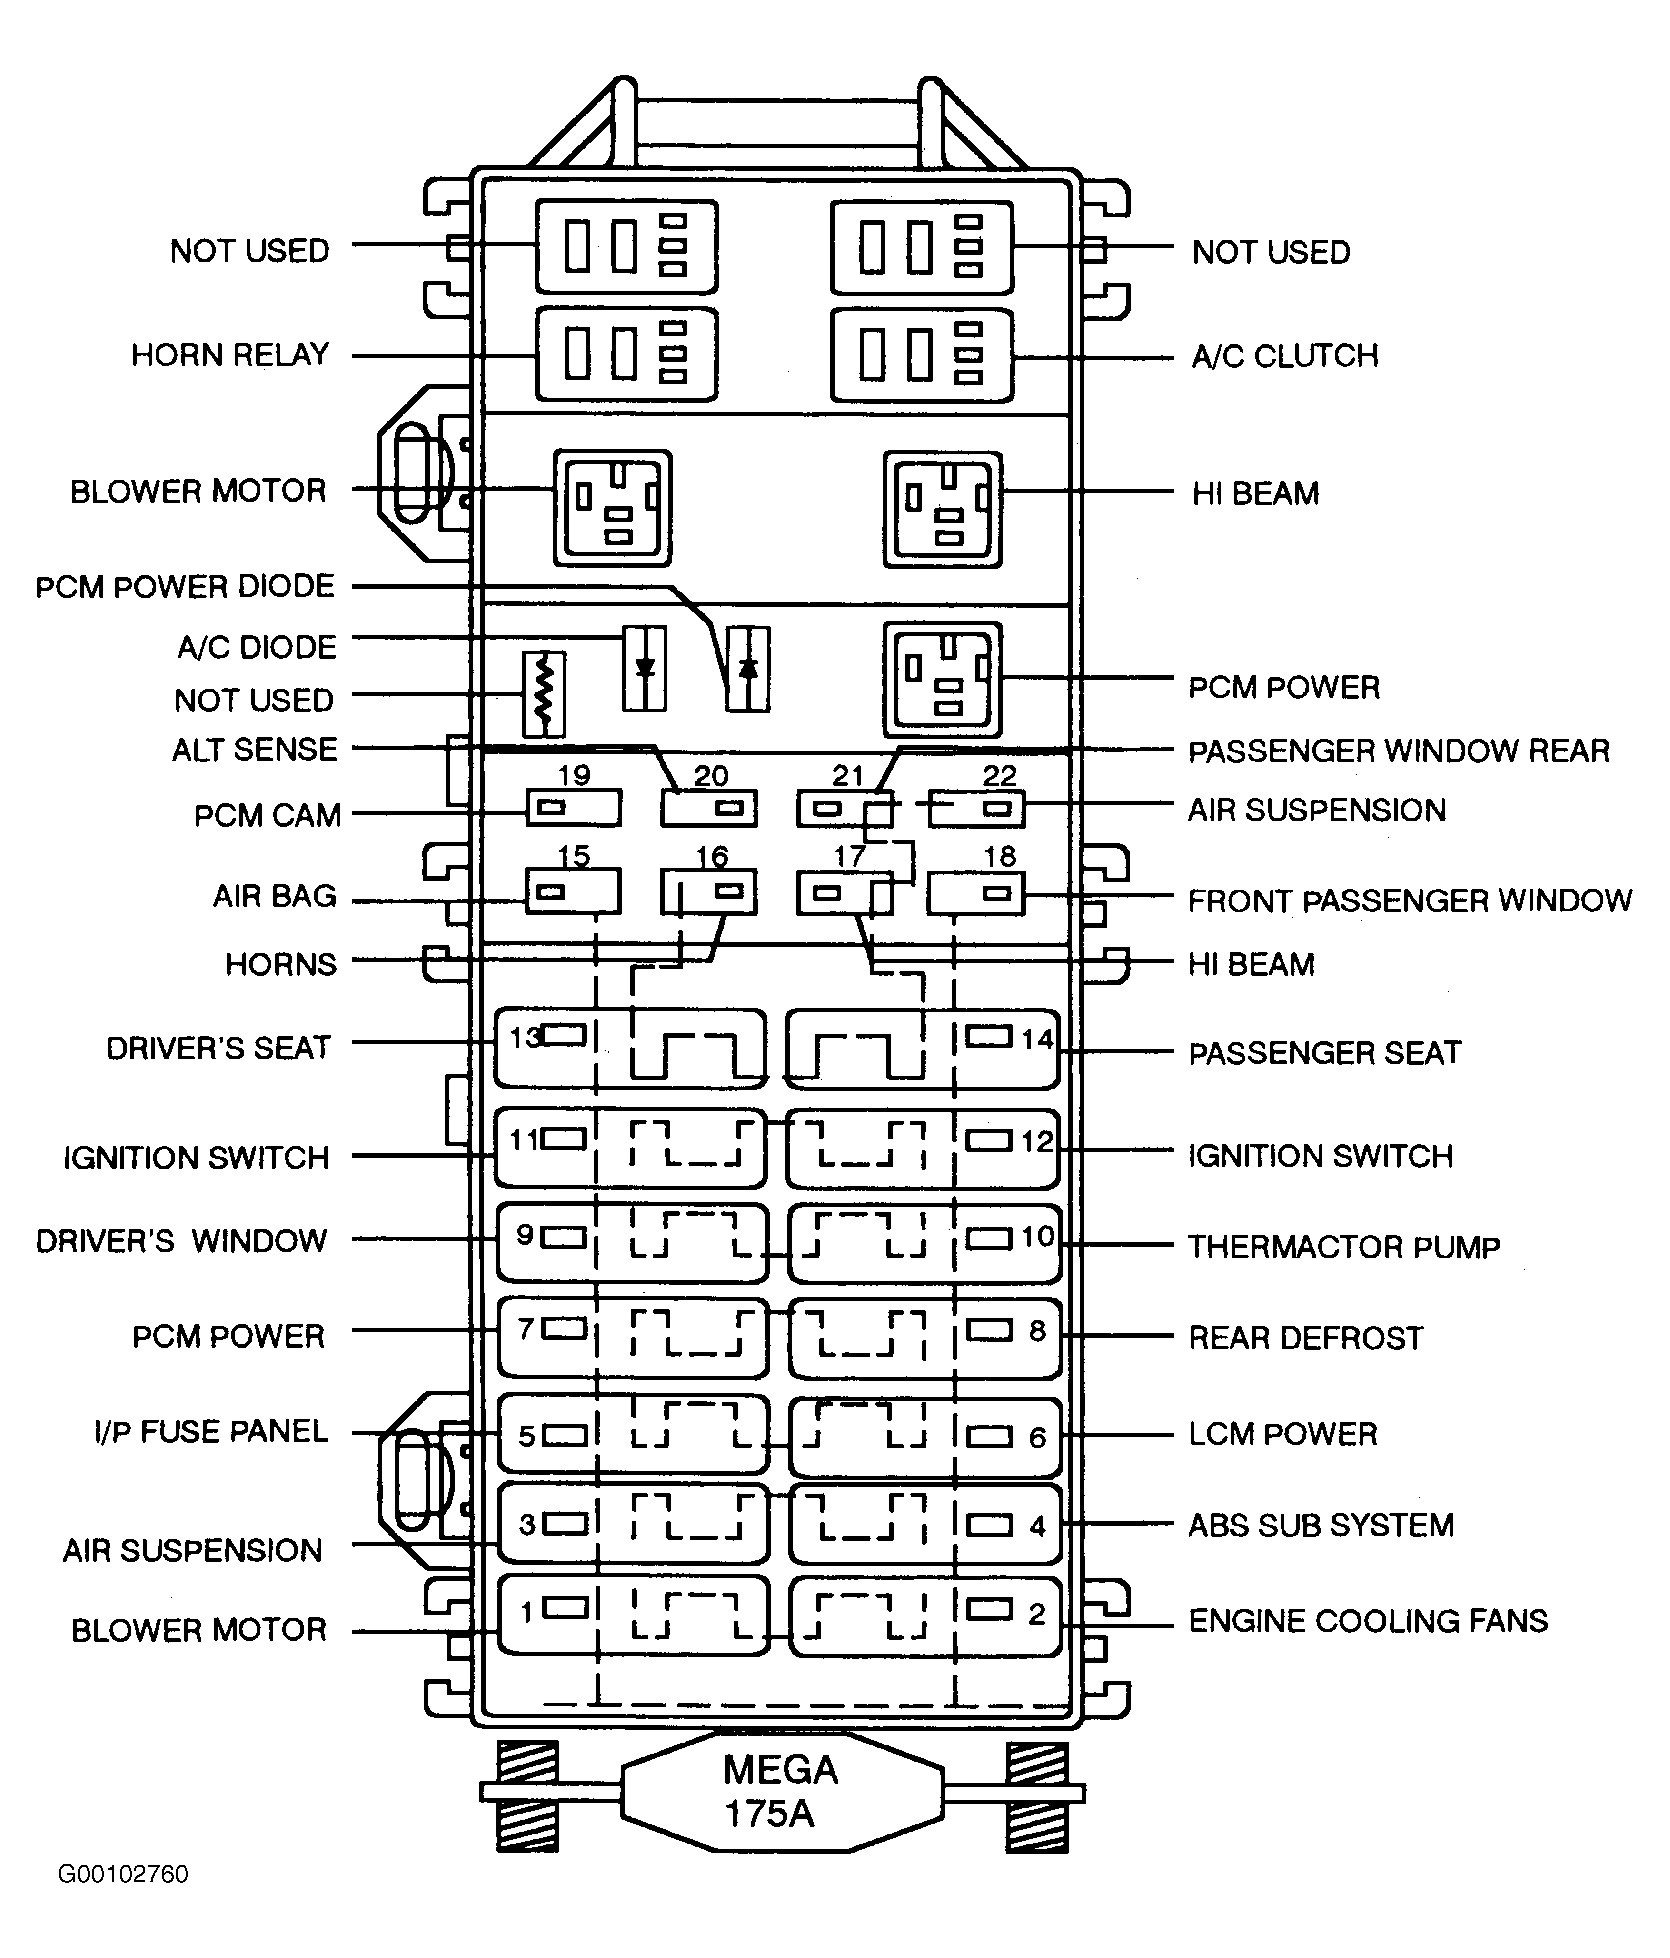 91 town car fuse diagram simple wiring diagram rh david huggett co uk car fuse box [ 1670 x 1958 Pixel ]